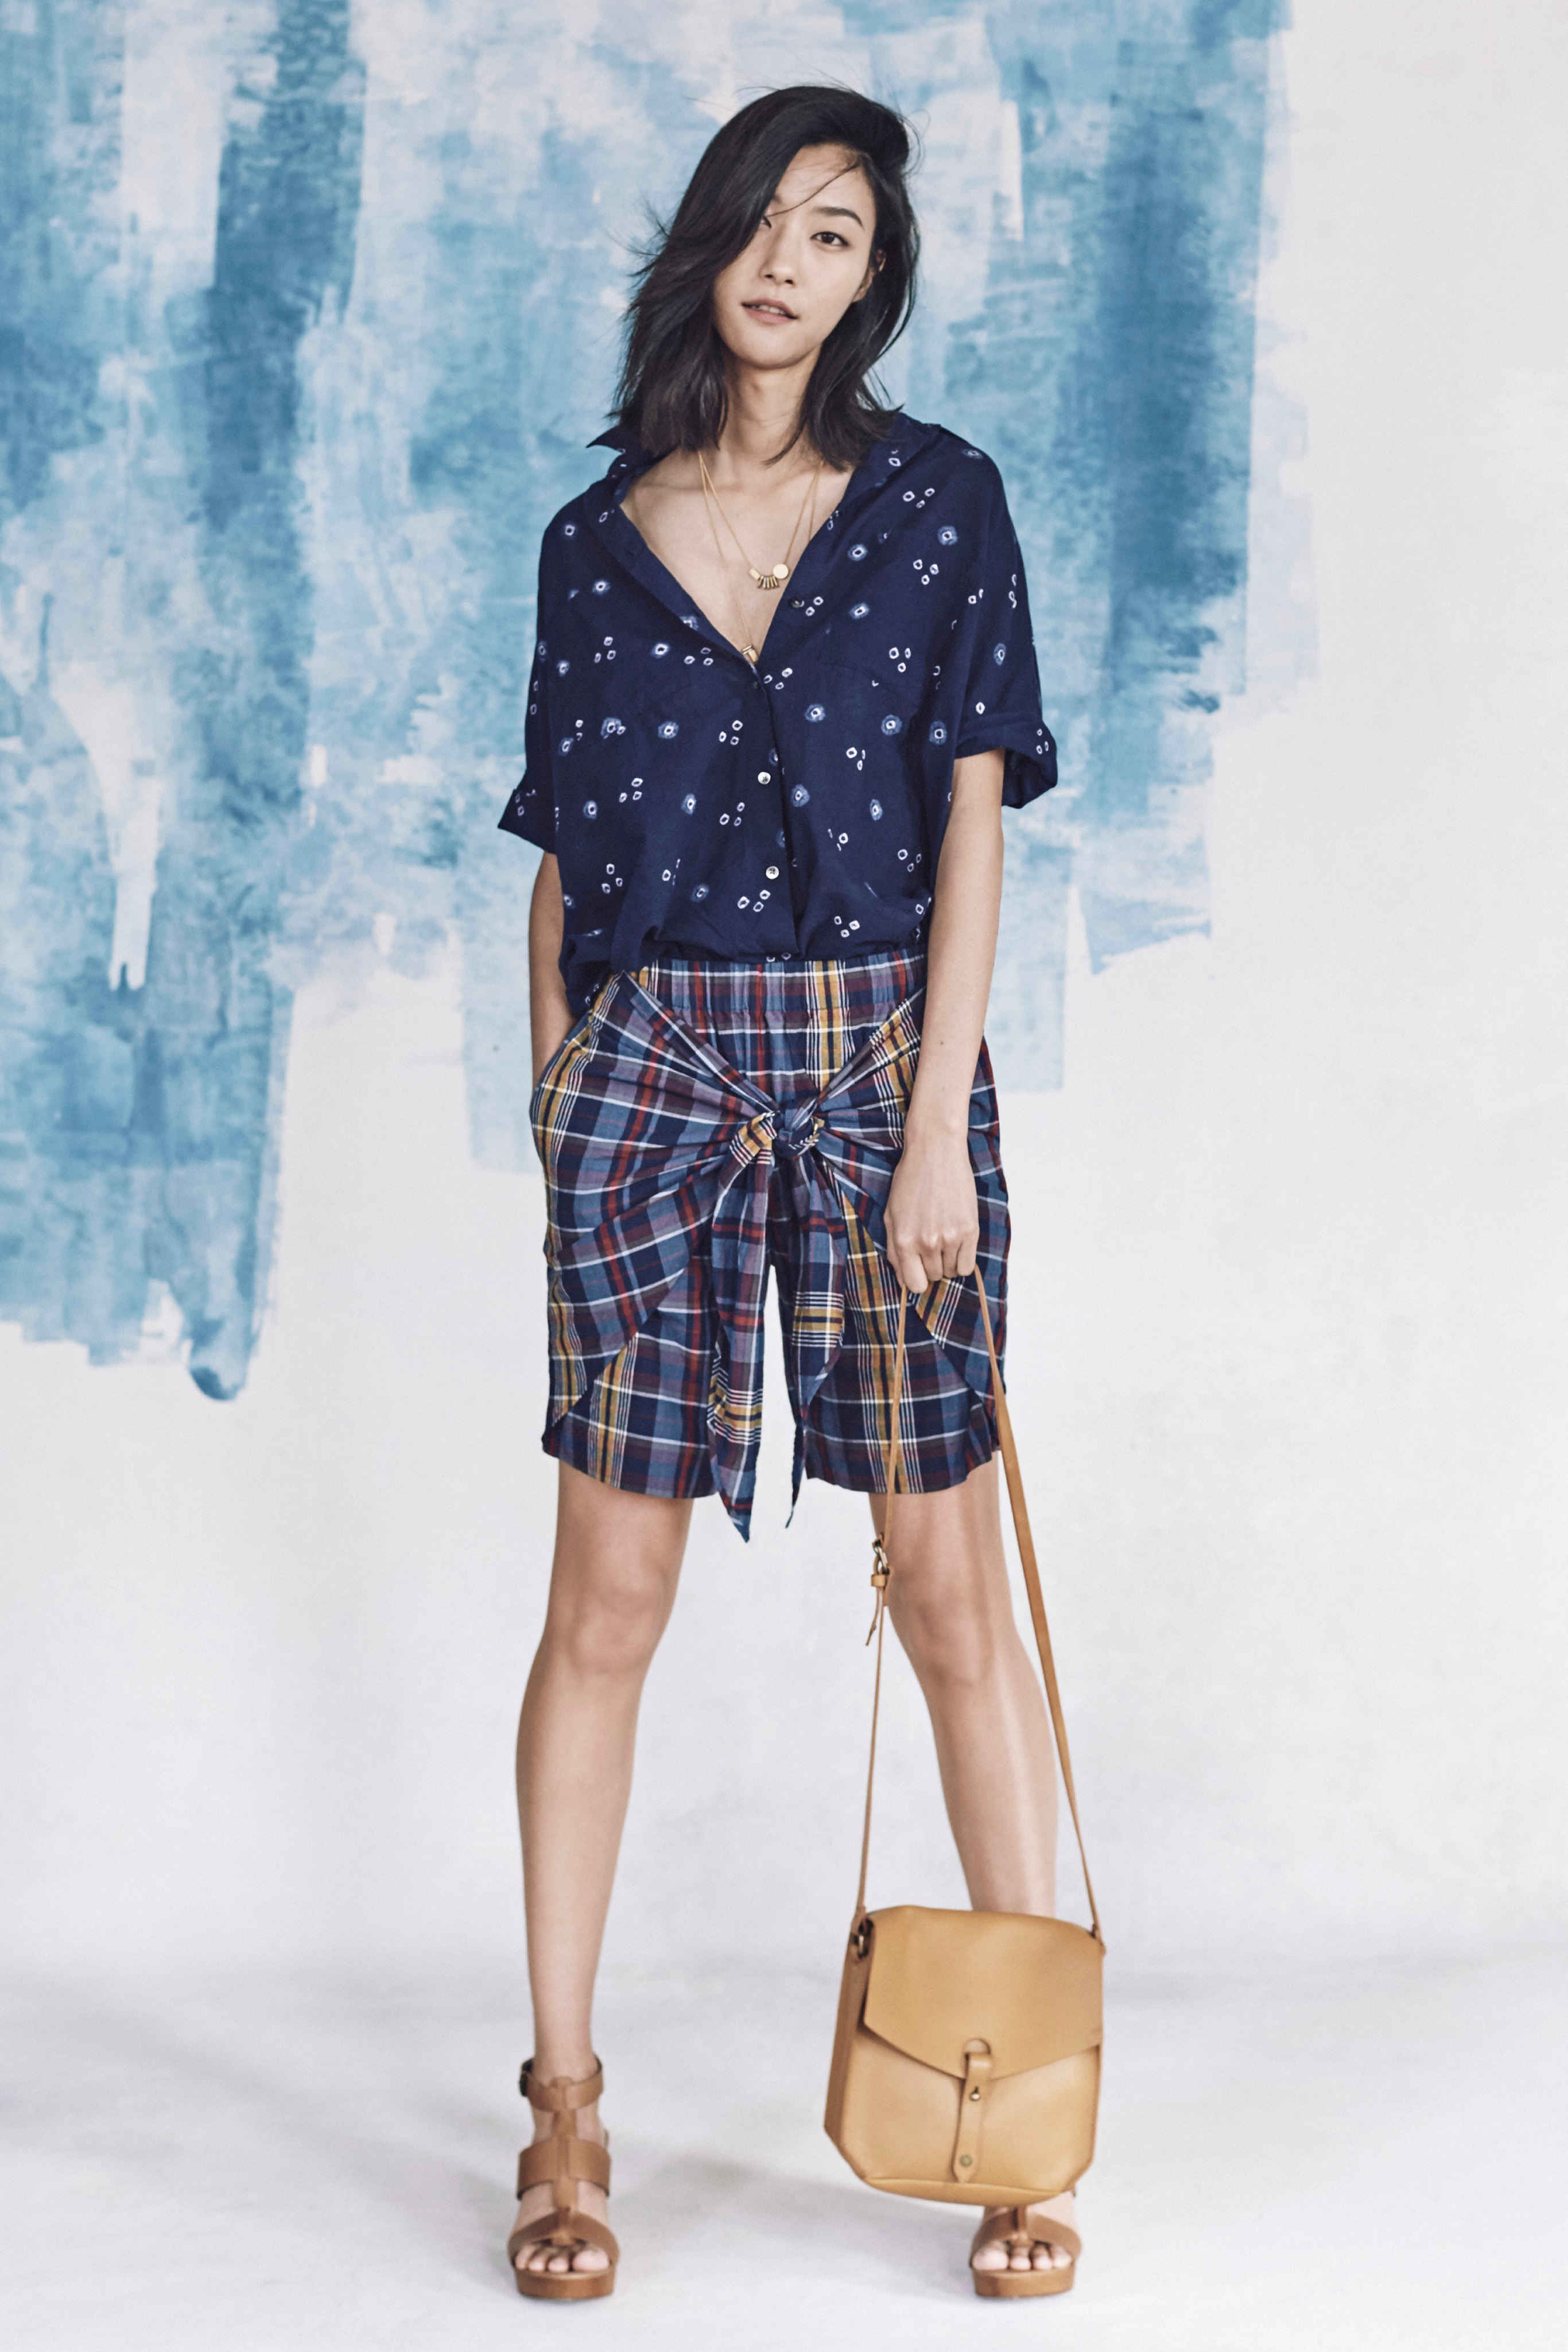 Madewell just released their spring 2016 collection, and trust me, you are going to be clamoring for every single piece. It's just so wearable. - Madewell Spring 2016 Lookbook